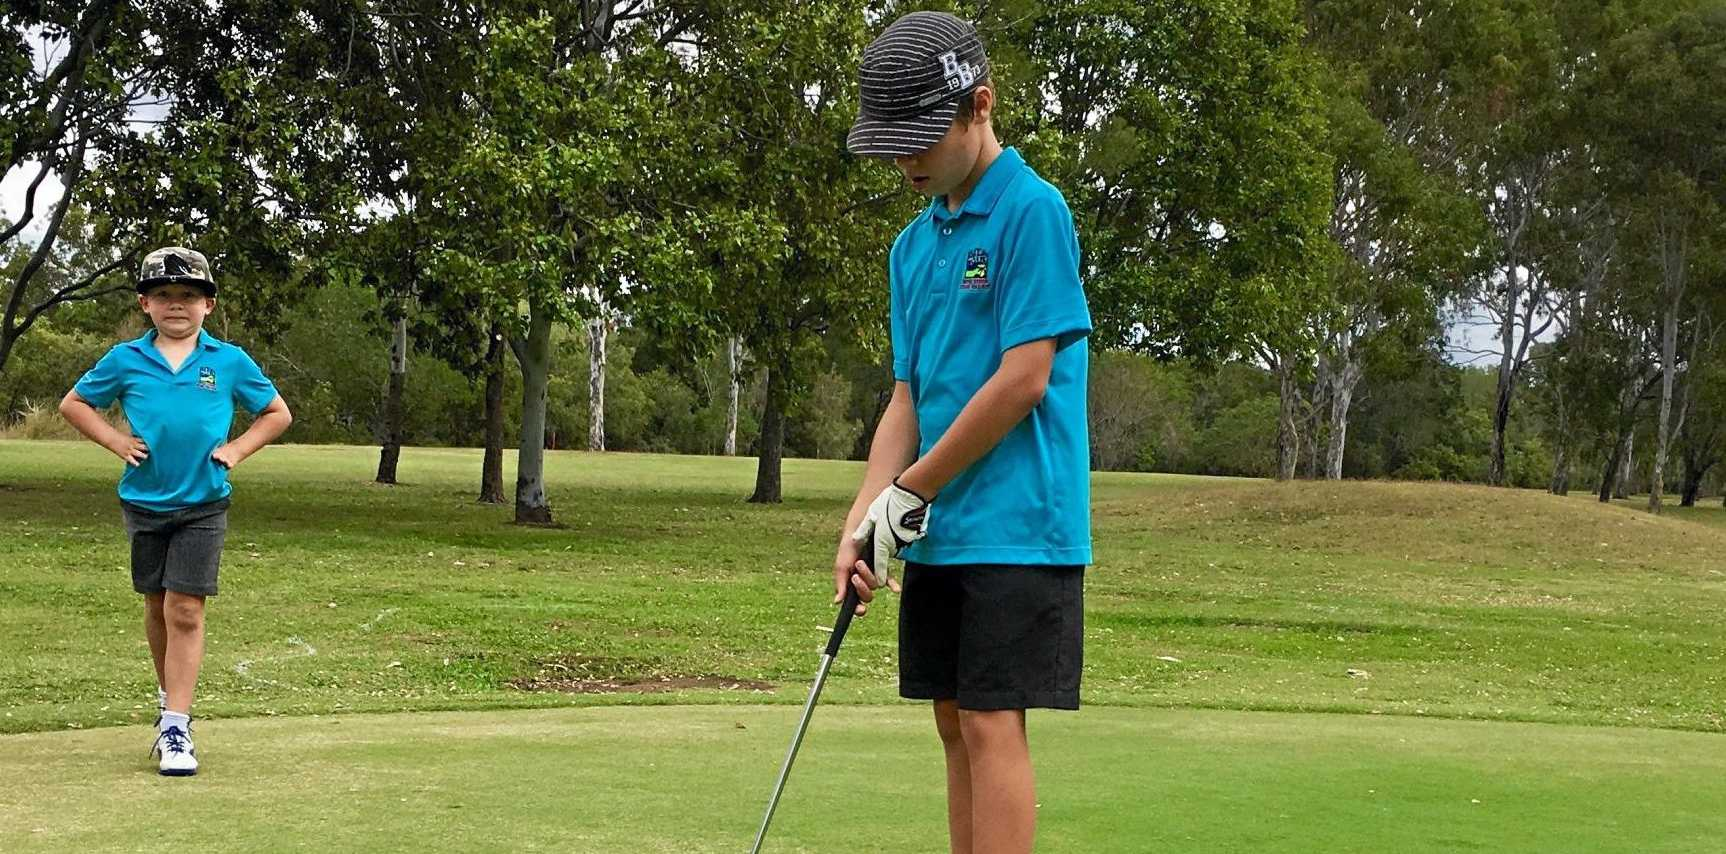 Tyler Grice was a strong competitor in Sunday's junior golf open